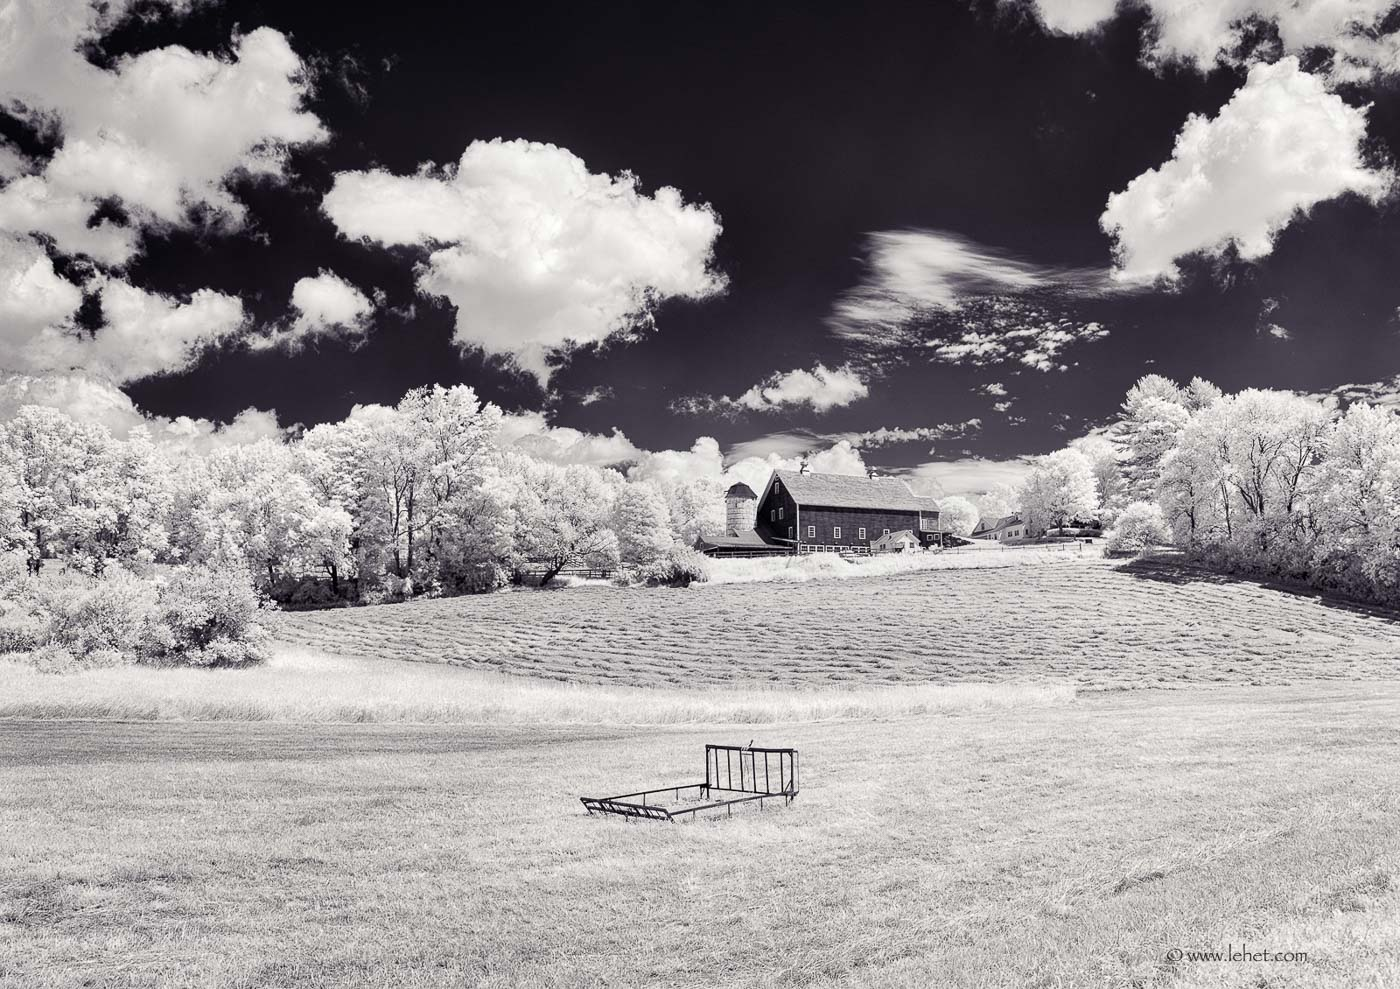 Haying and Barn, South Woodstock Vermont